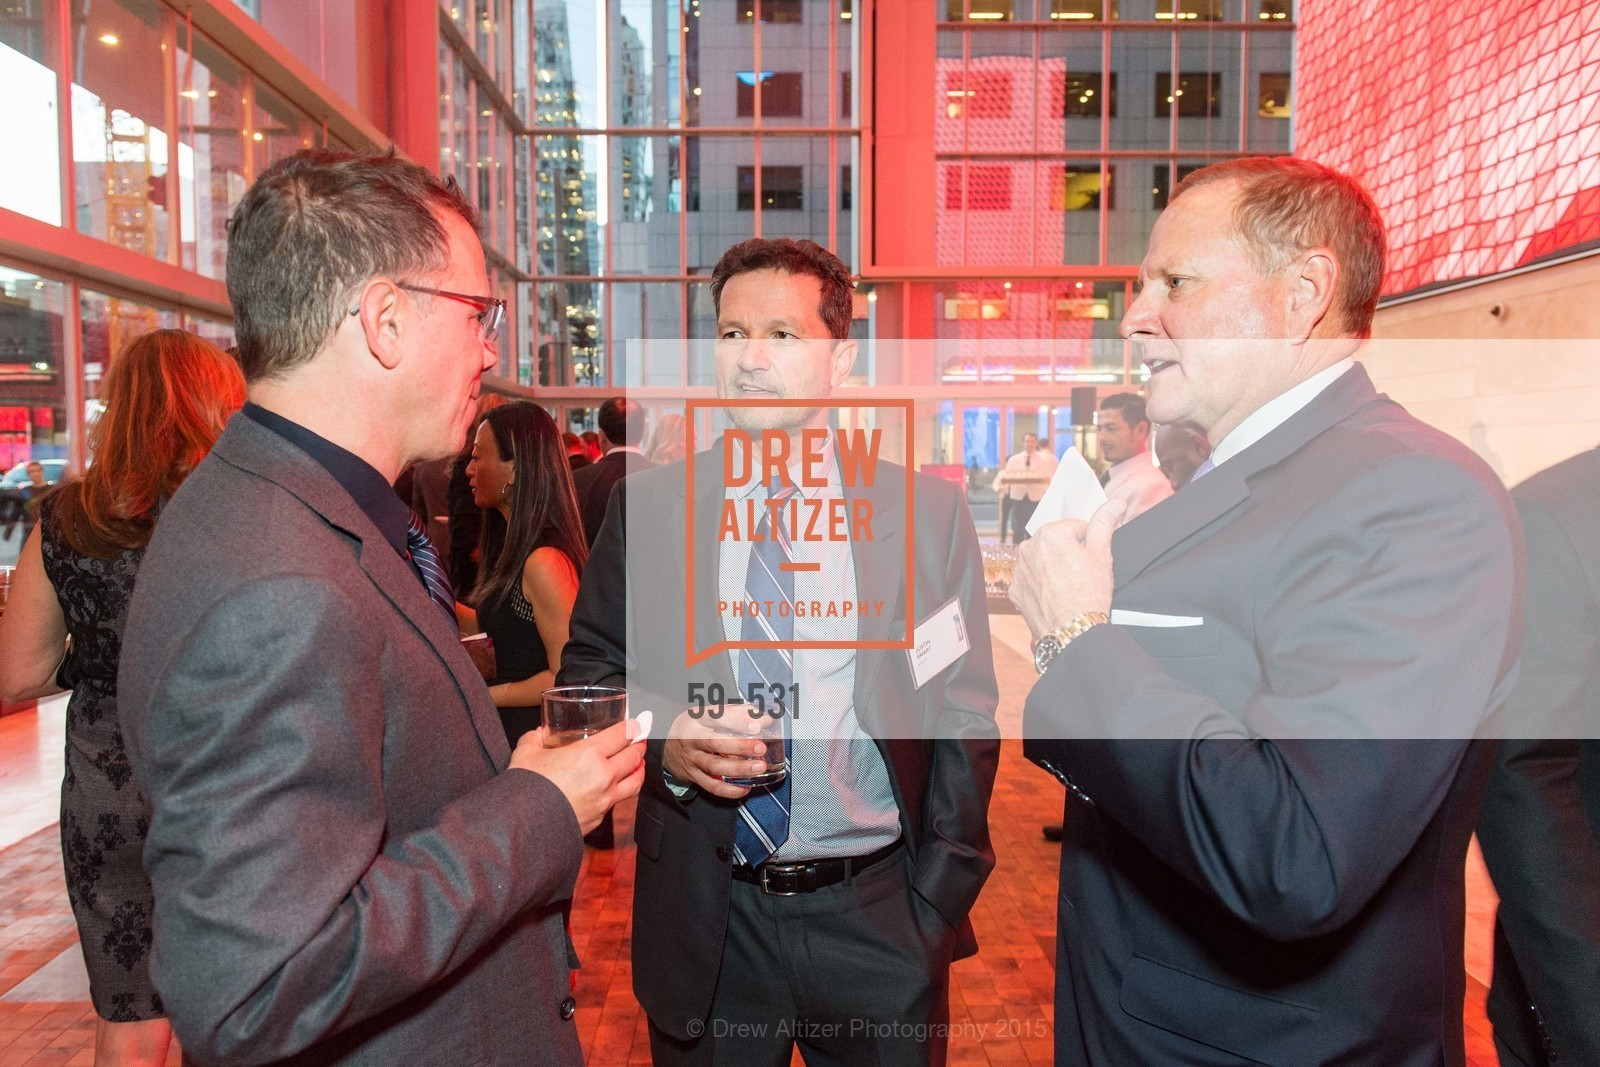 Douglas Giesey, Justin Smart, Rob Paratt, Kilroy Unveiling Presents Virtual Depictions: San Francisco by Refik Anadol, 350 Mission Street. 350 Mission Street, November 16th, 2015,Drew Altizer, Drew Altizer Photography, full-service agency, private events, San Francisco photographer, photographer california